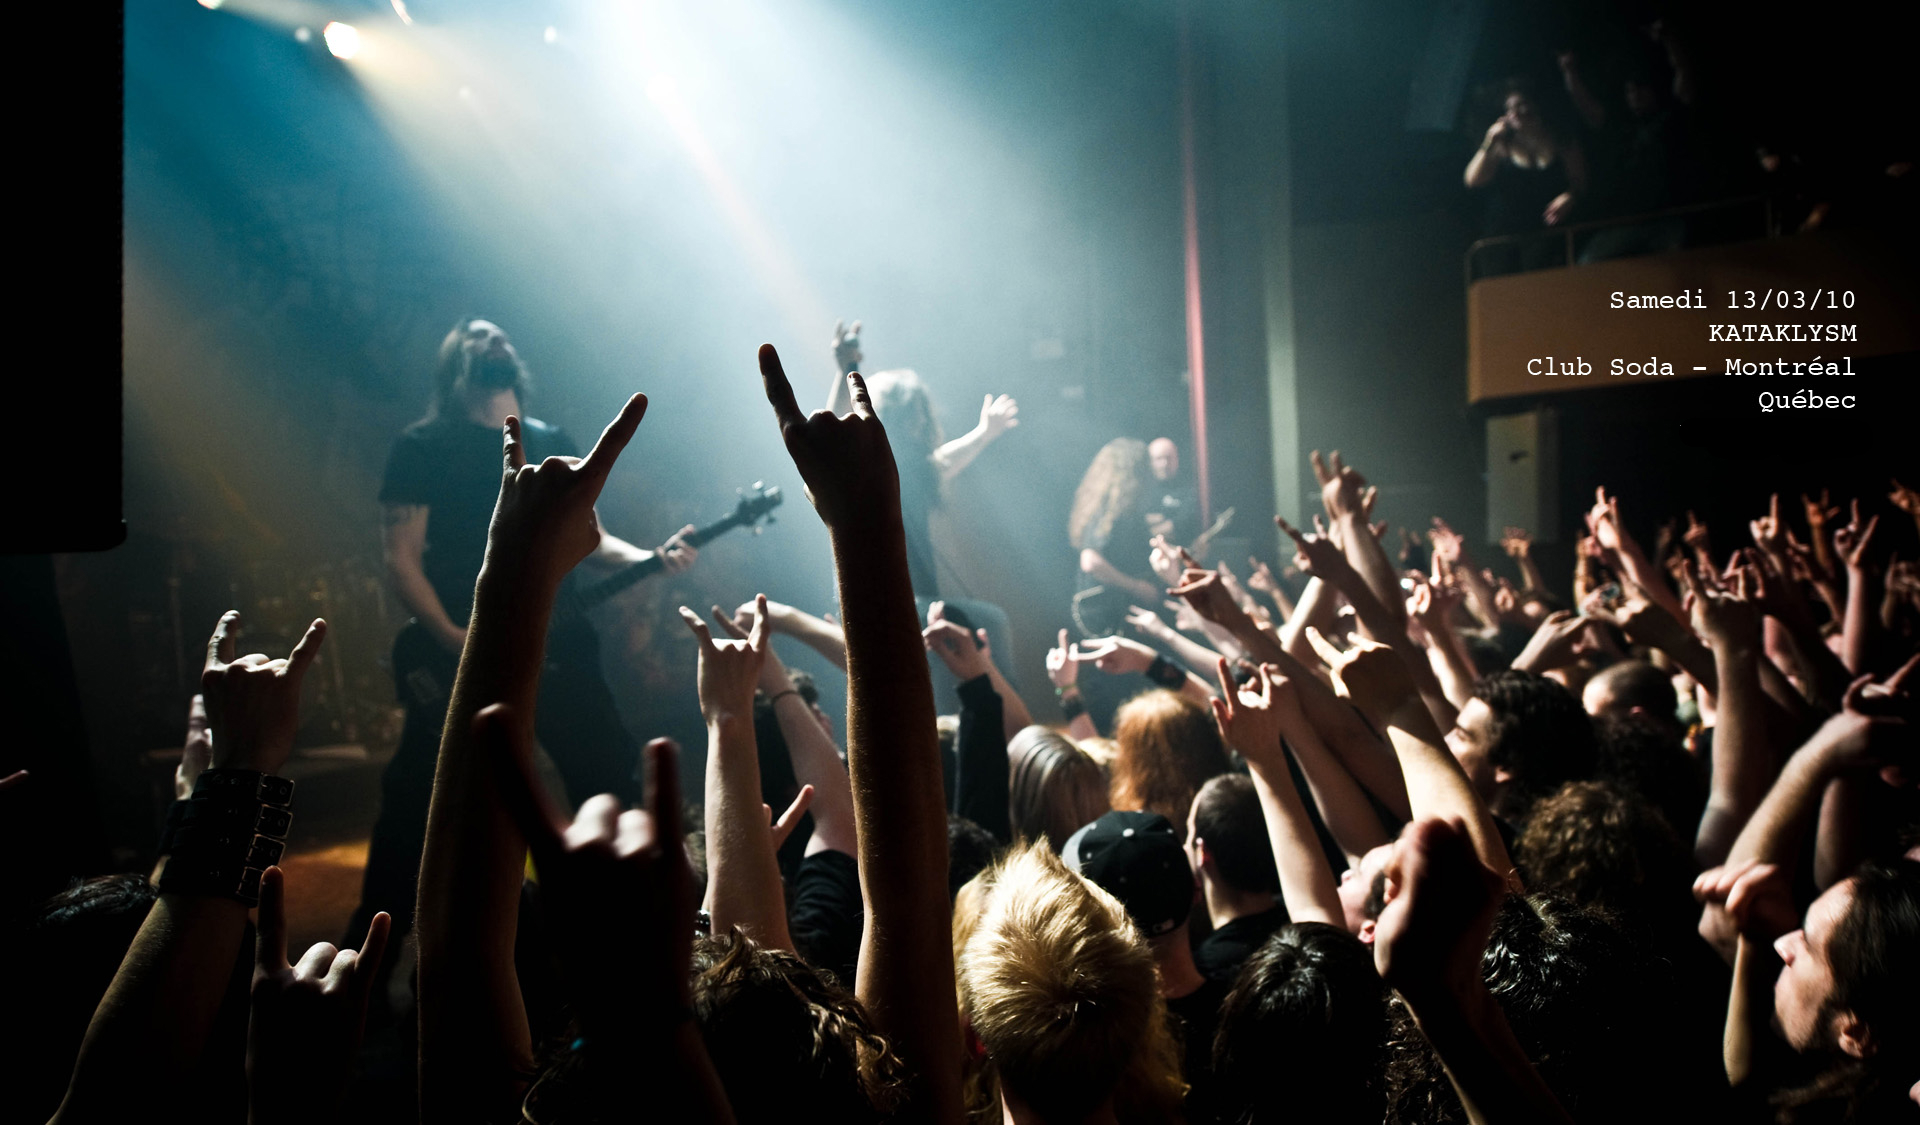 concert concerts crowd wallpaper 1920x1125 86210 WallpaperUP 1920x1125